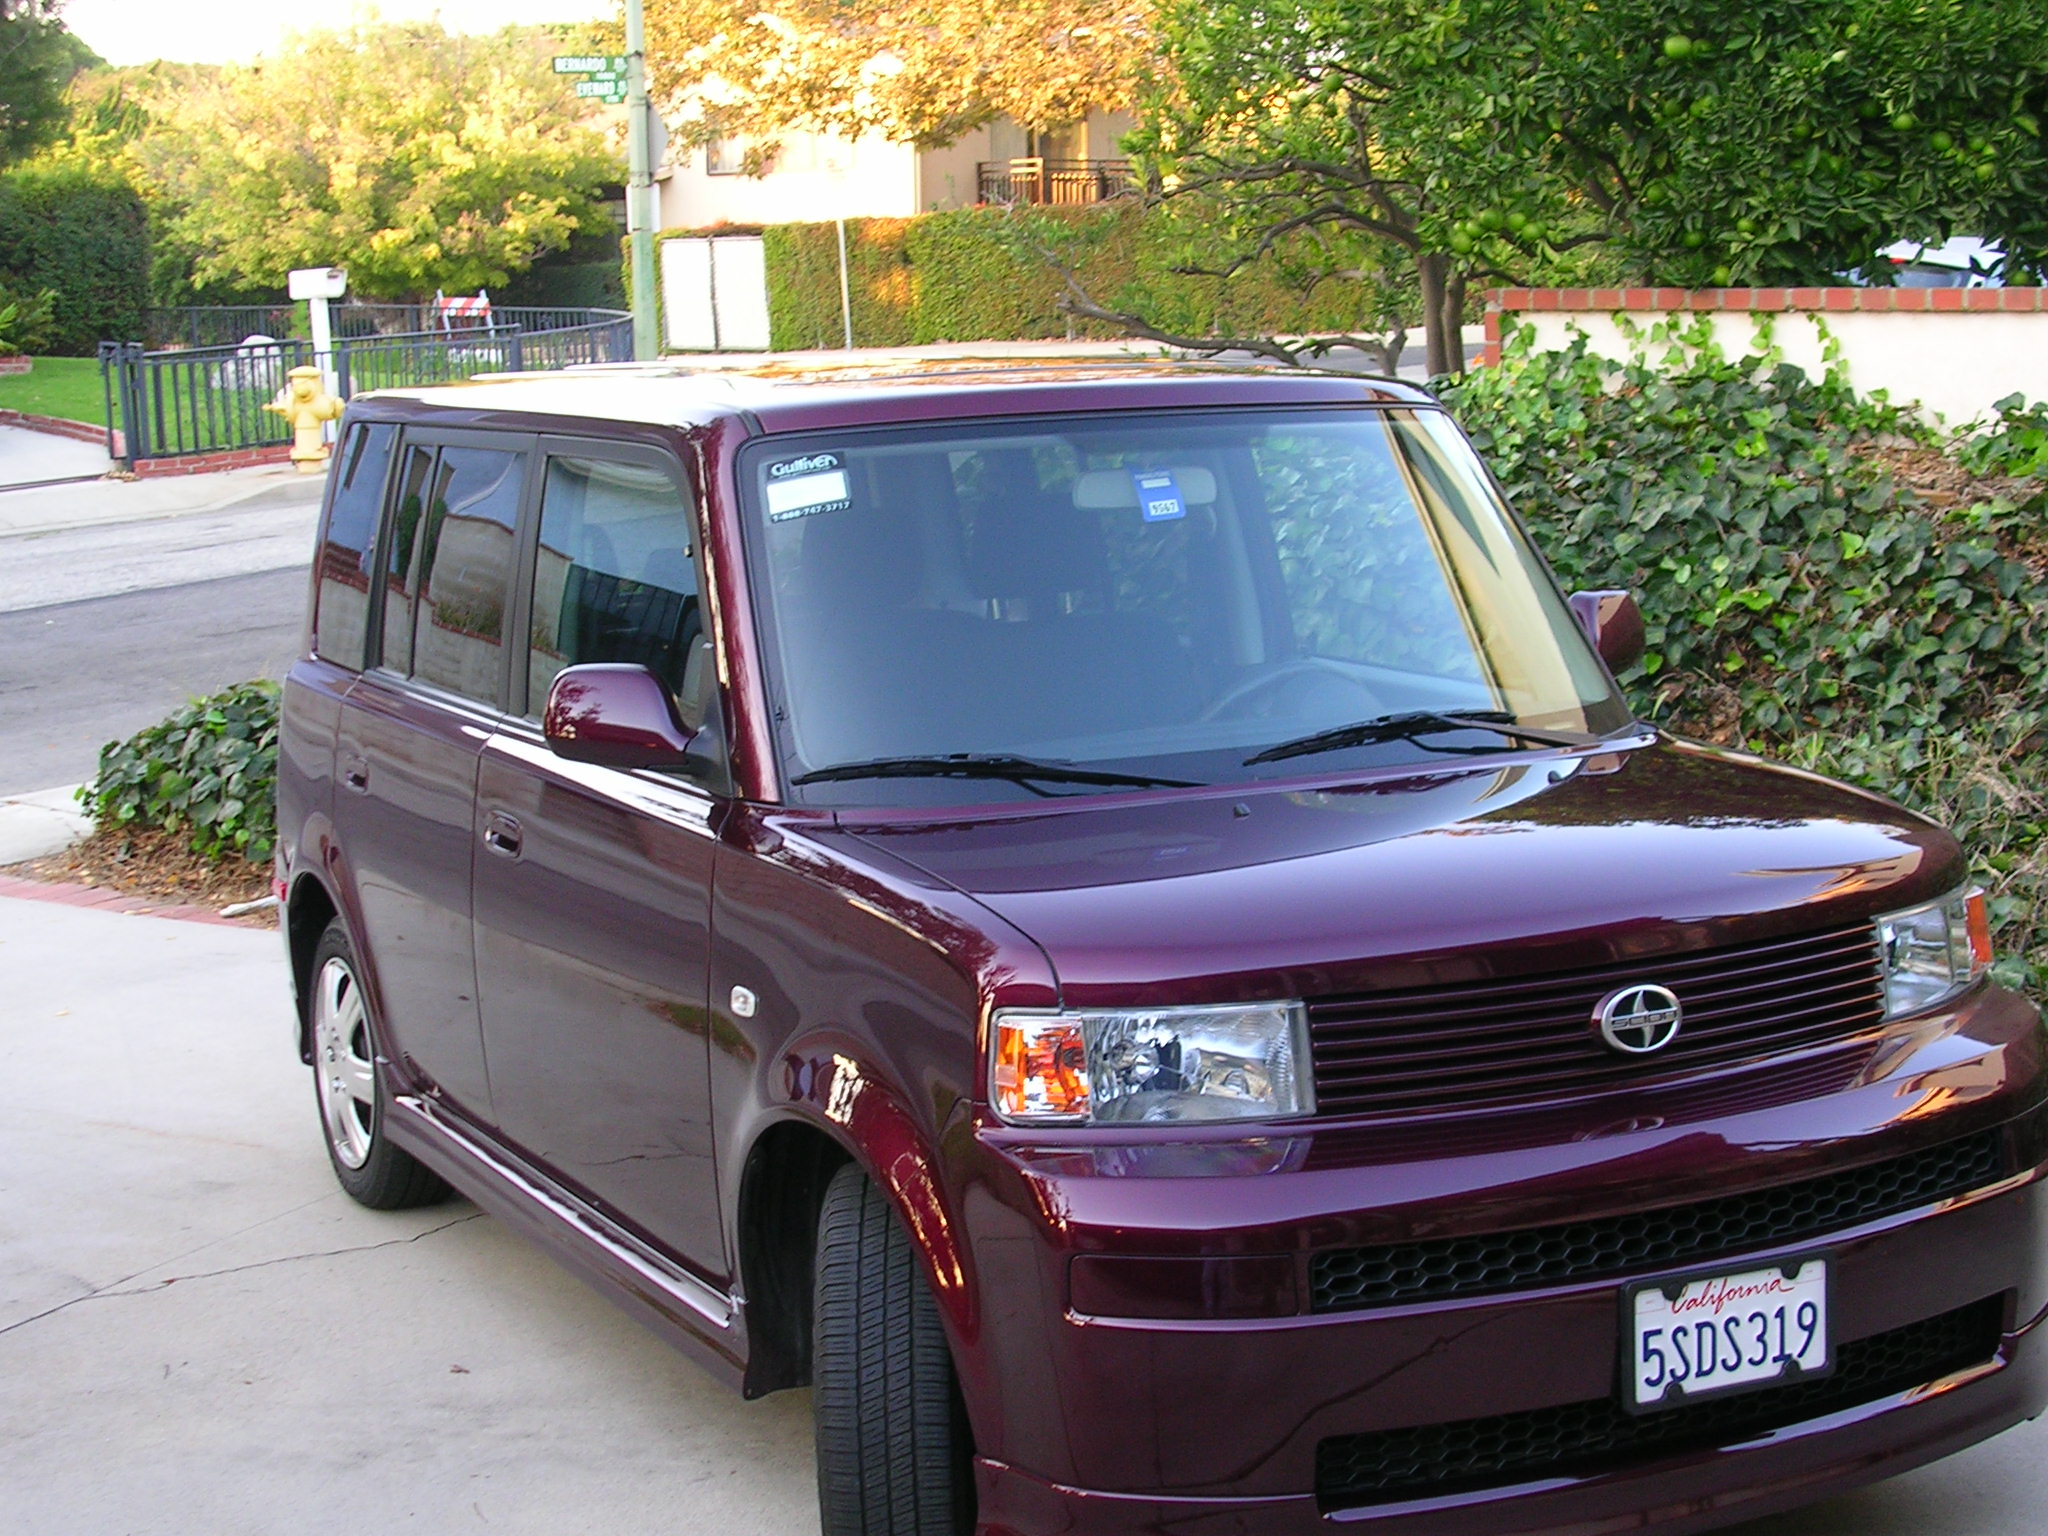 My Scion xB